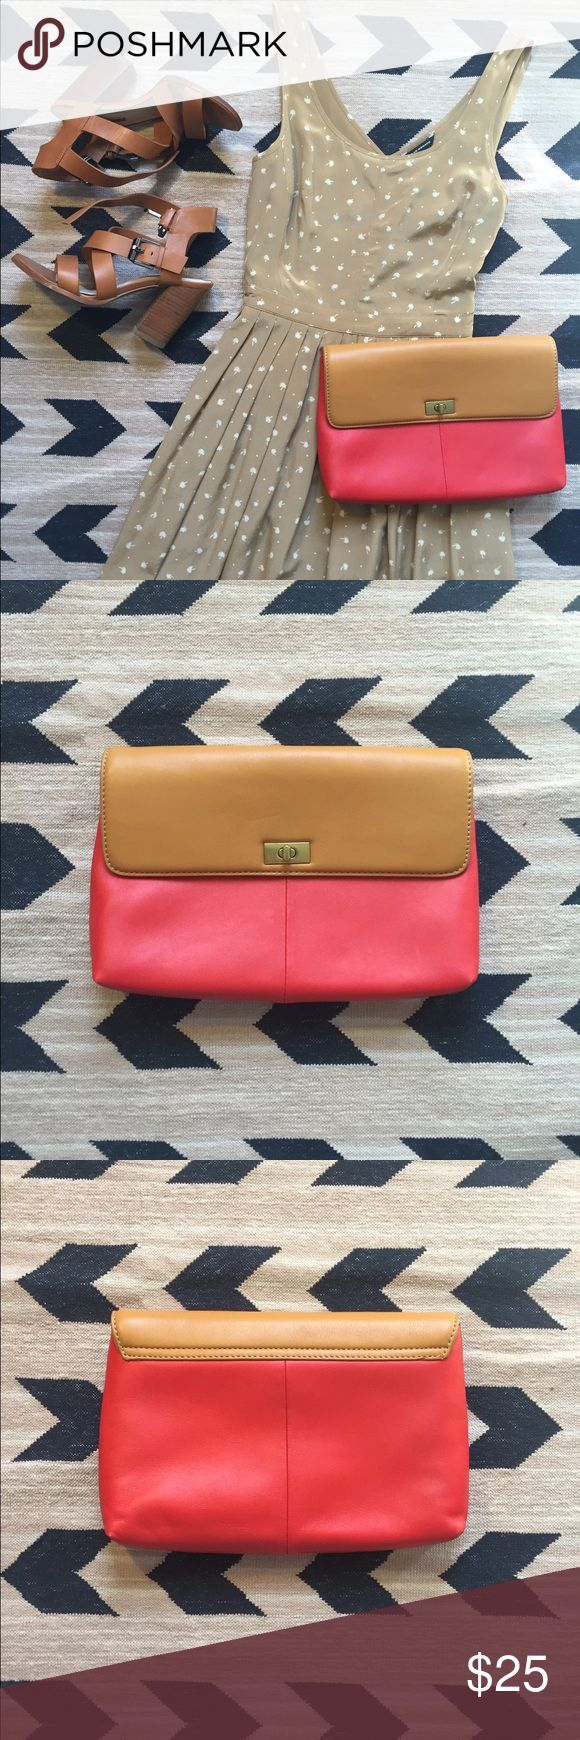 J Crew factory clutch from outlet. NWOT.  J Crew clutch from outlet.  Never used.  Tan and coral red.  Minor dents as shown in photo. J. Crew Factory Bags Clutches & Wristlets